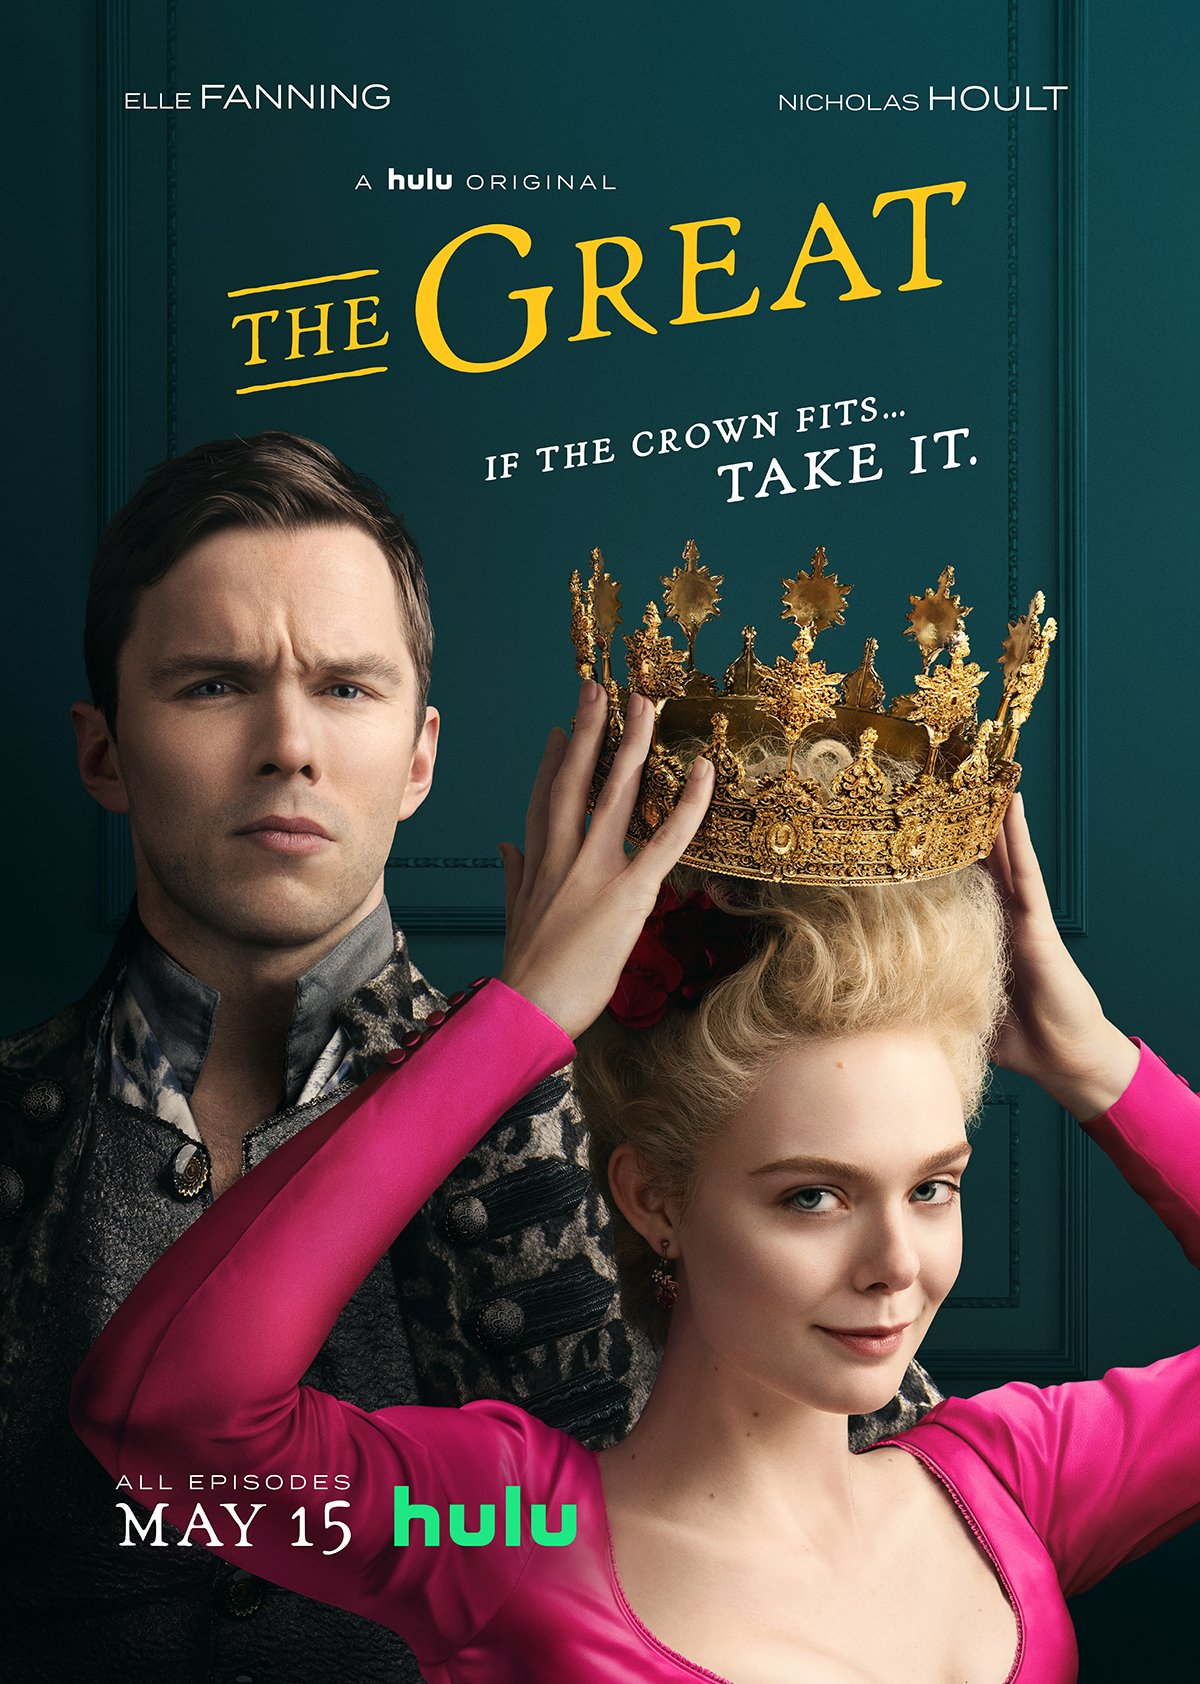 Hulu's The Great